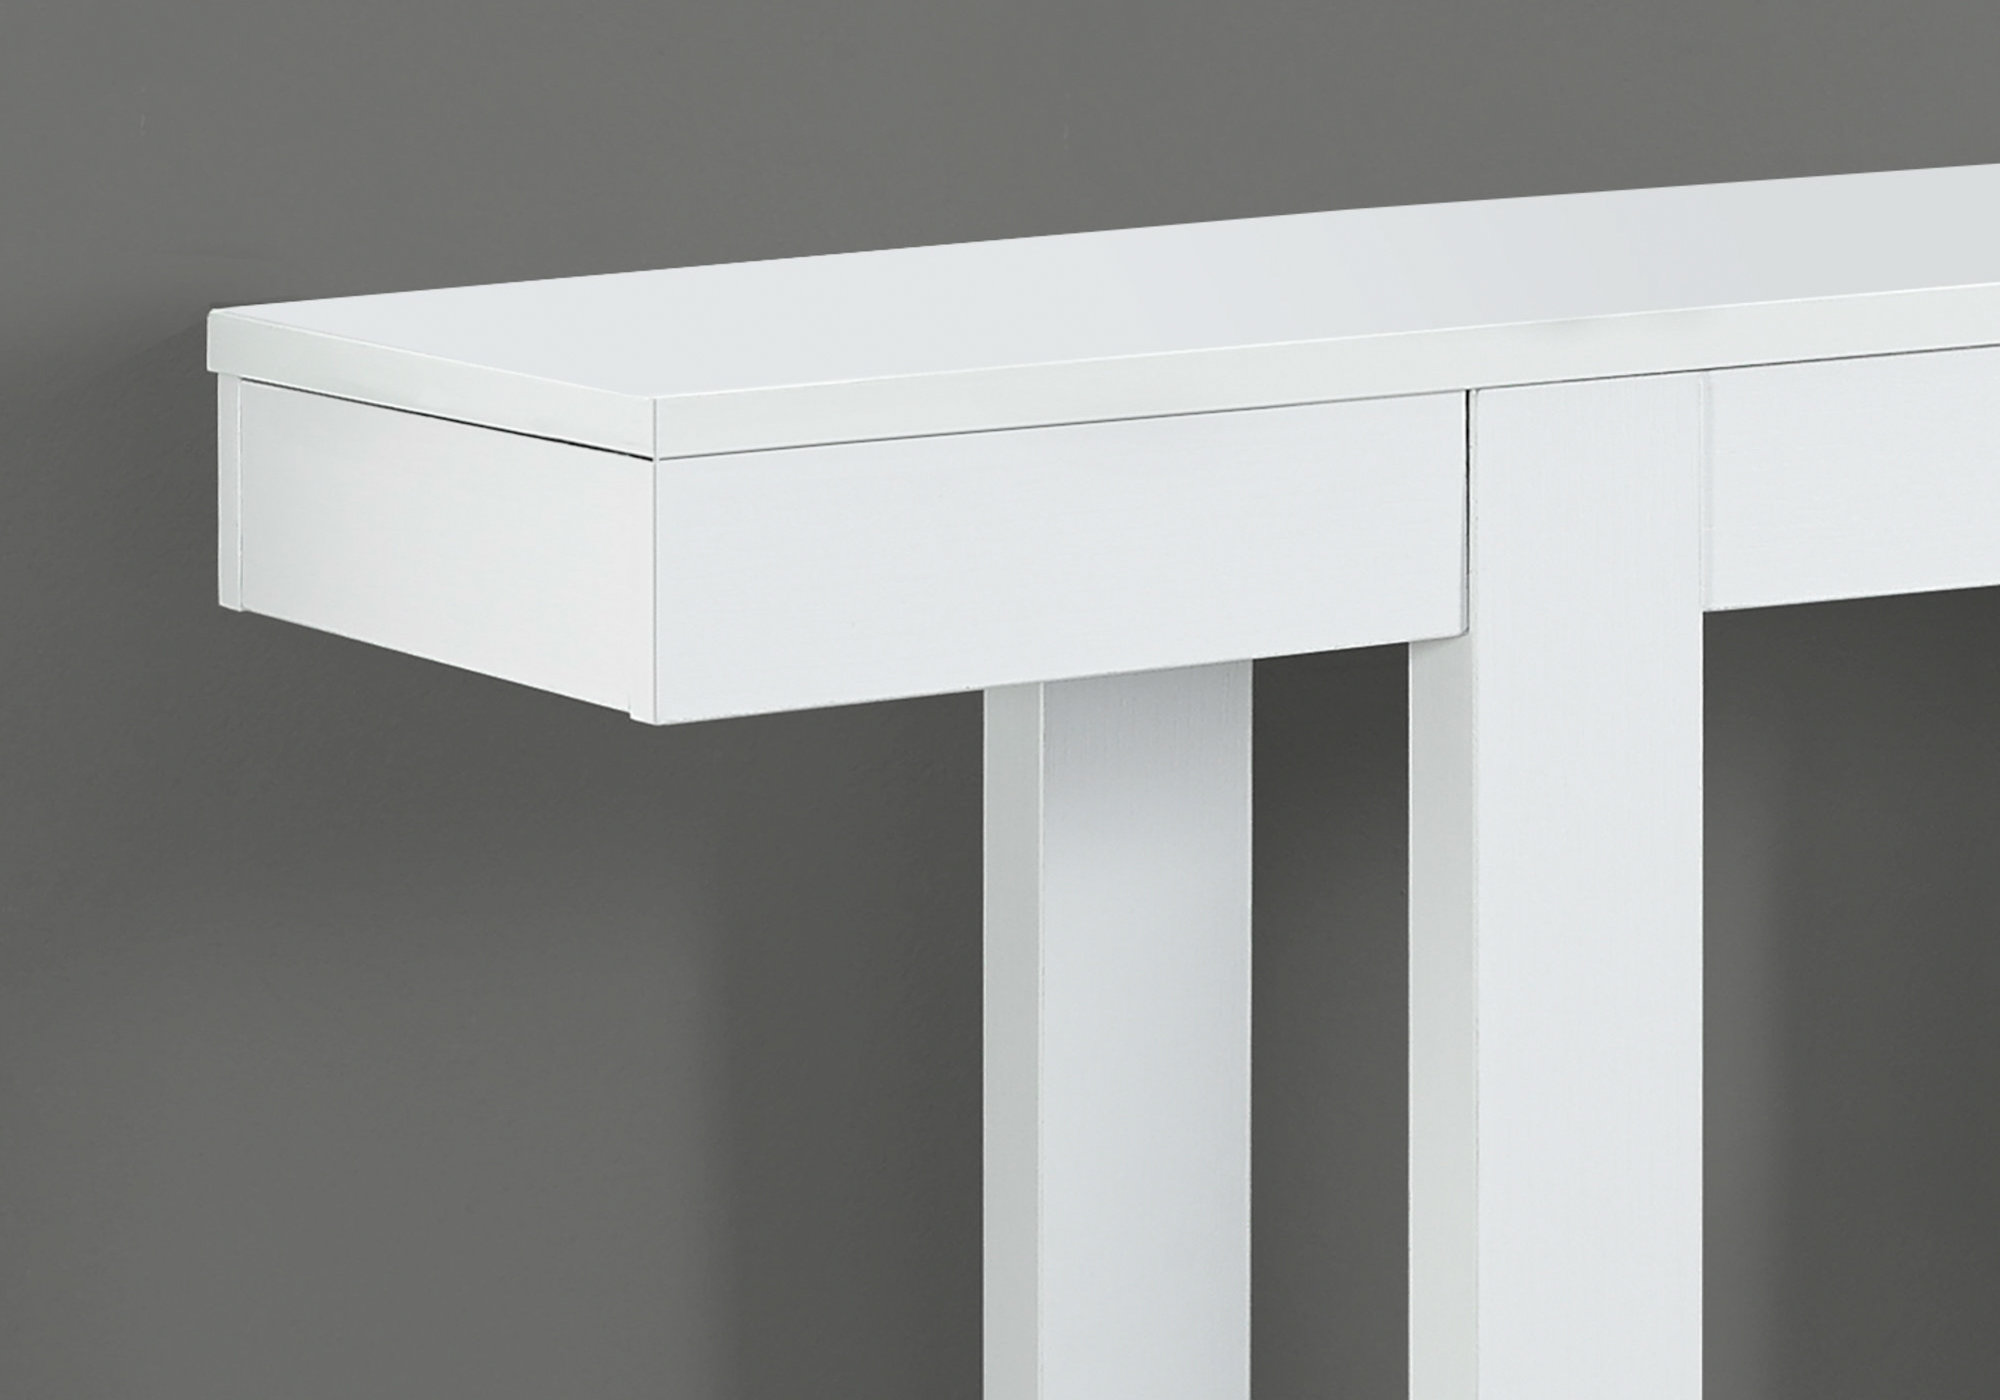 accent table white hall console tables galvanized metal side carpet edge strip bedside lights desk combo wood and round outdoor patio coffee mirrored replica scandinavian